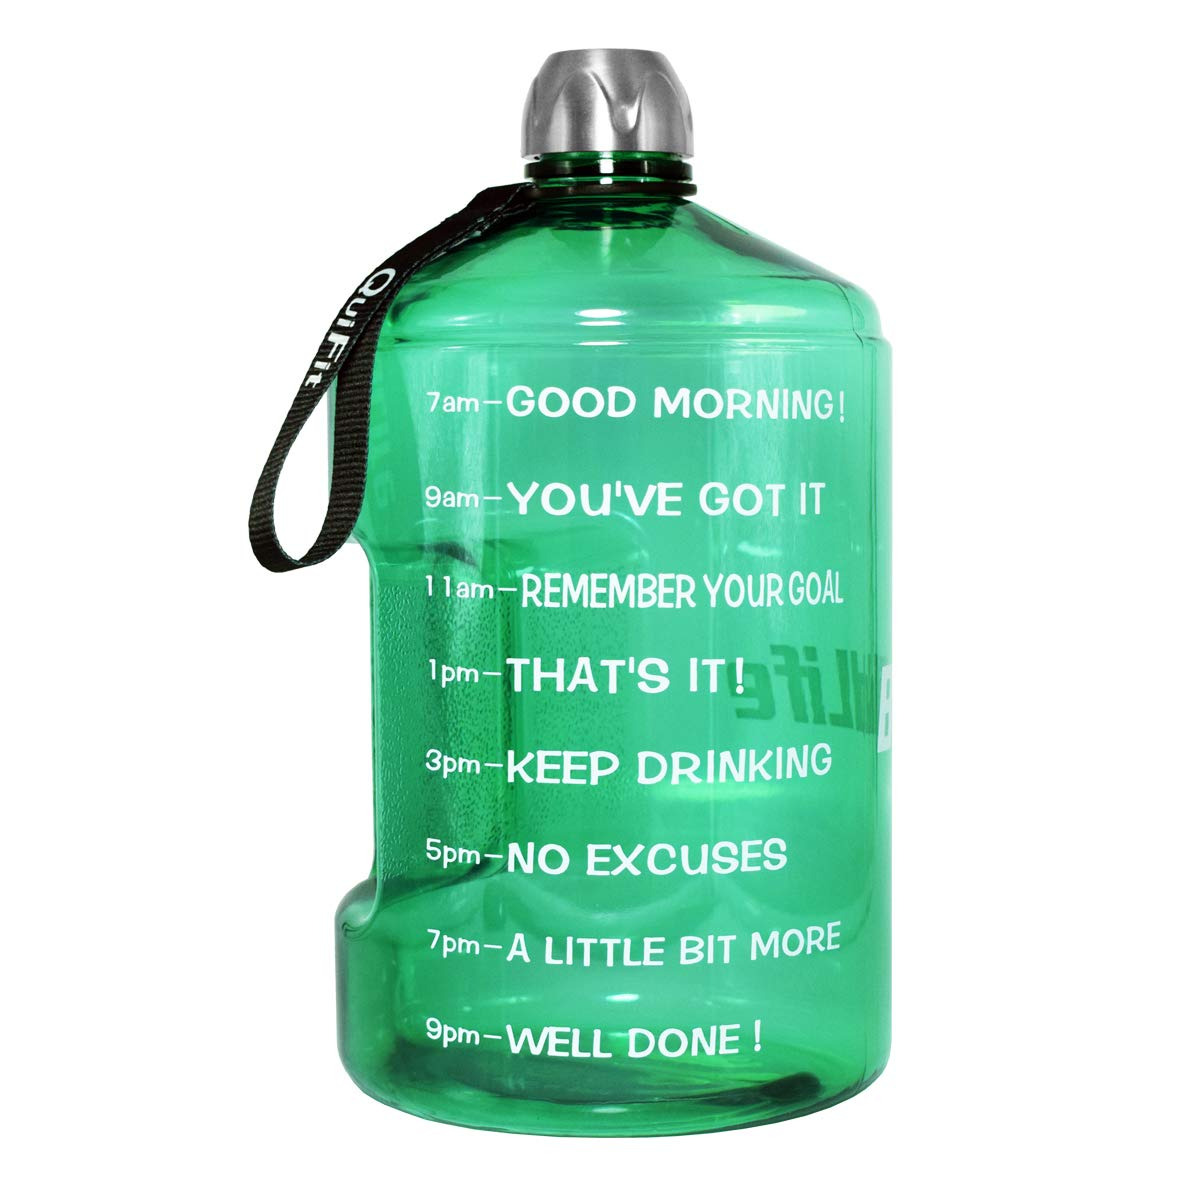 1 Gallon Water Bottle Motivational Fitness Workout with Time Marker  Drink More Water Daily   Clear BPA-Free   Large 128 Ounce/73OZ/43OZ of Water Throughout The Day (1 gallon-light green, 1 gallon)